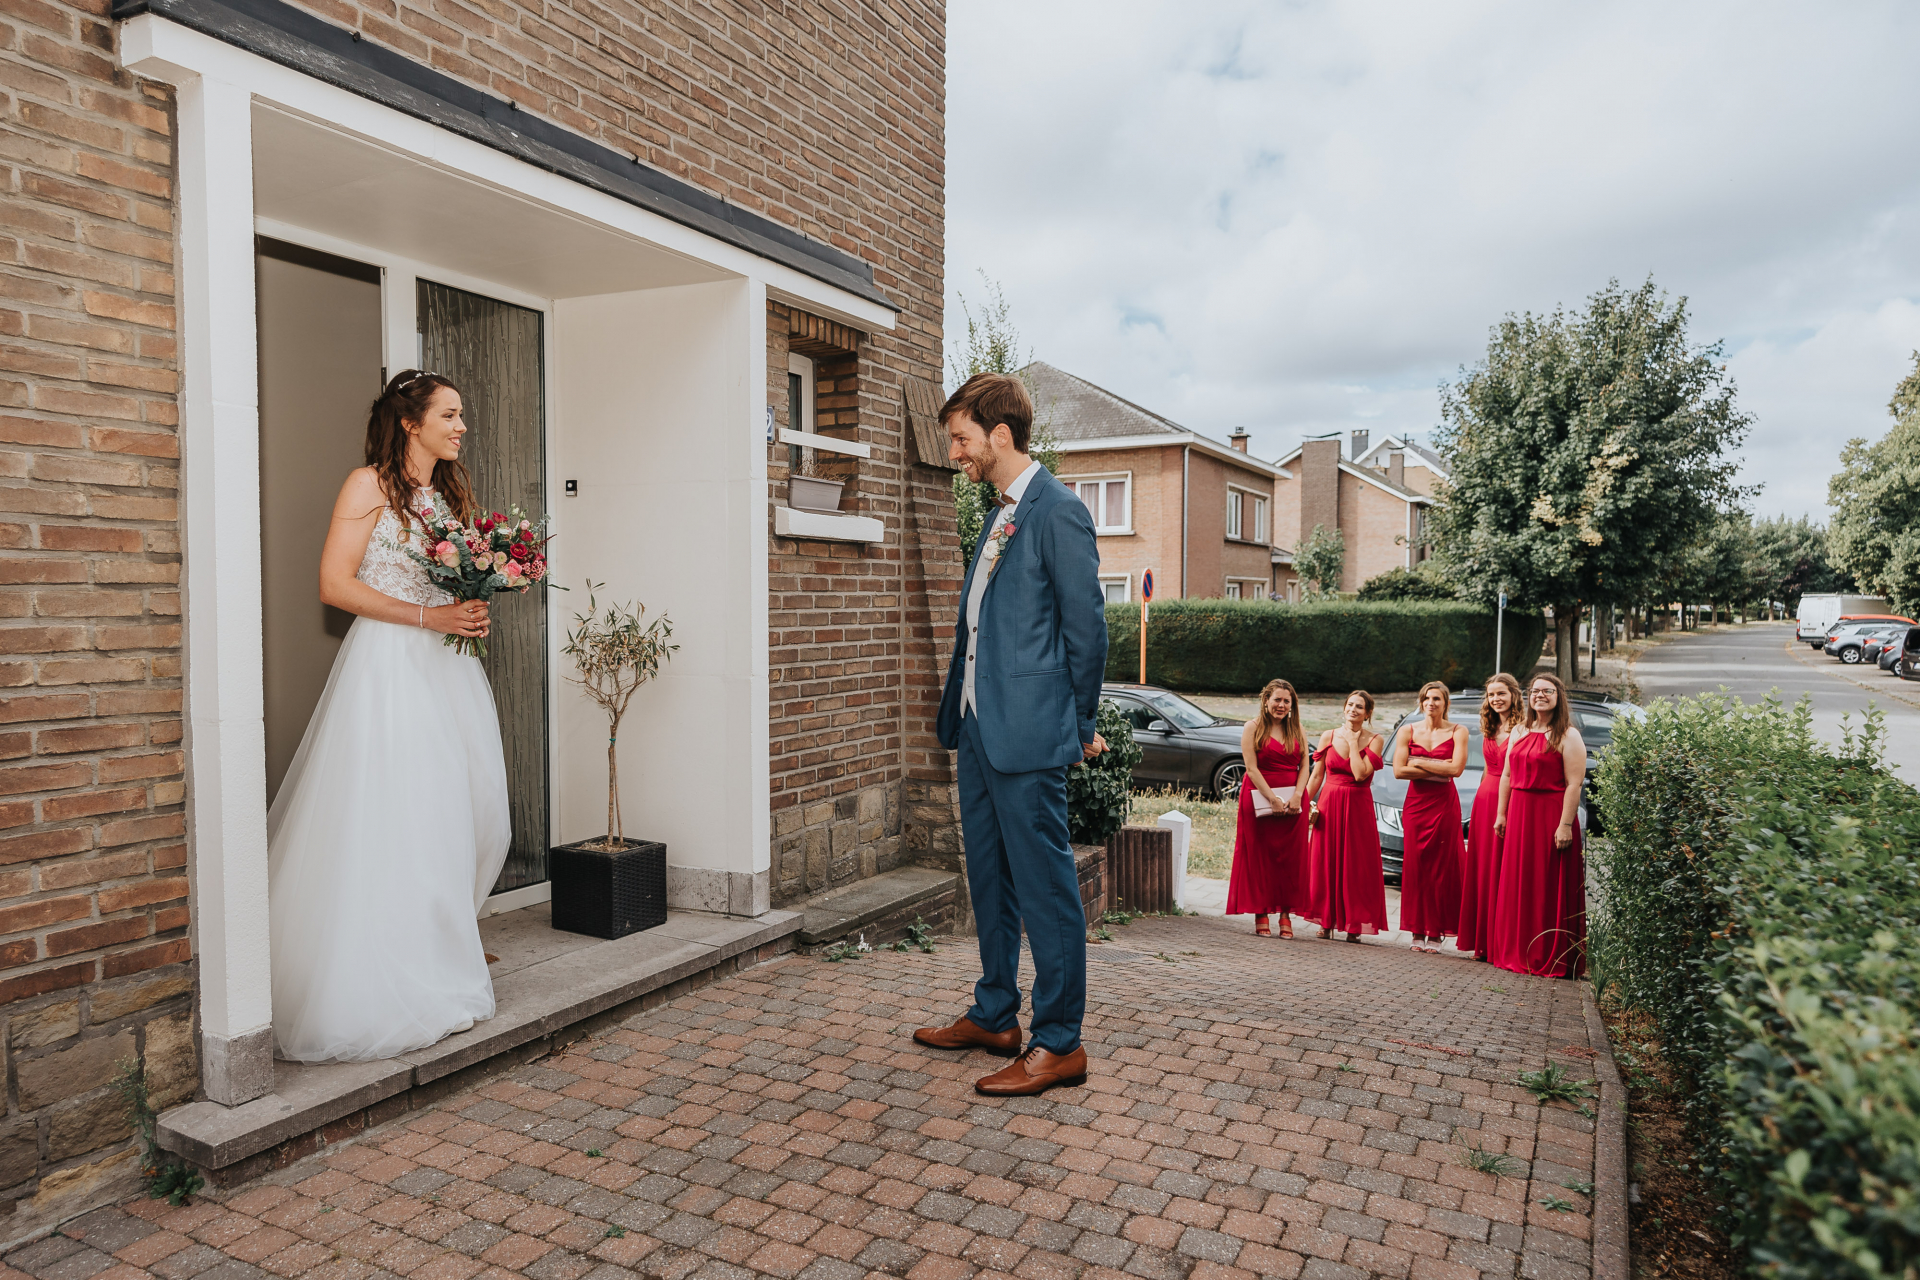 The brides home - Belgium Elopement Photographer | The groom arrives to pick up the bride from her house